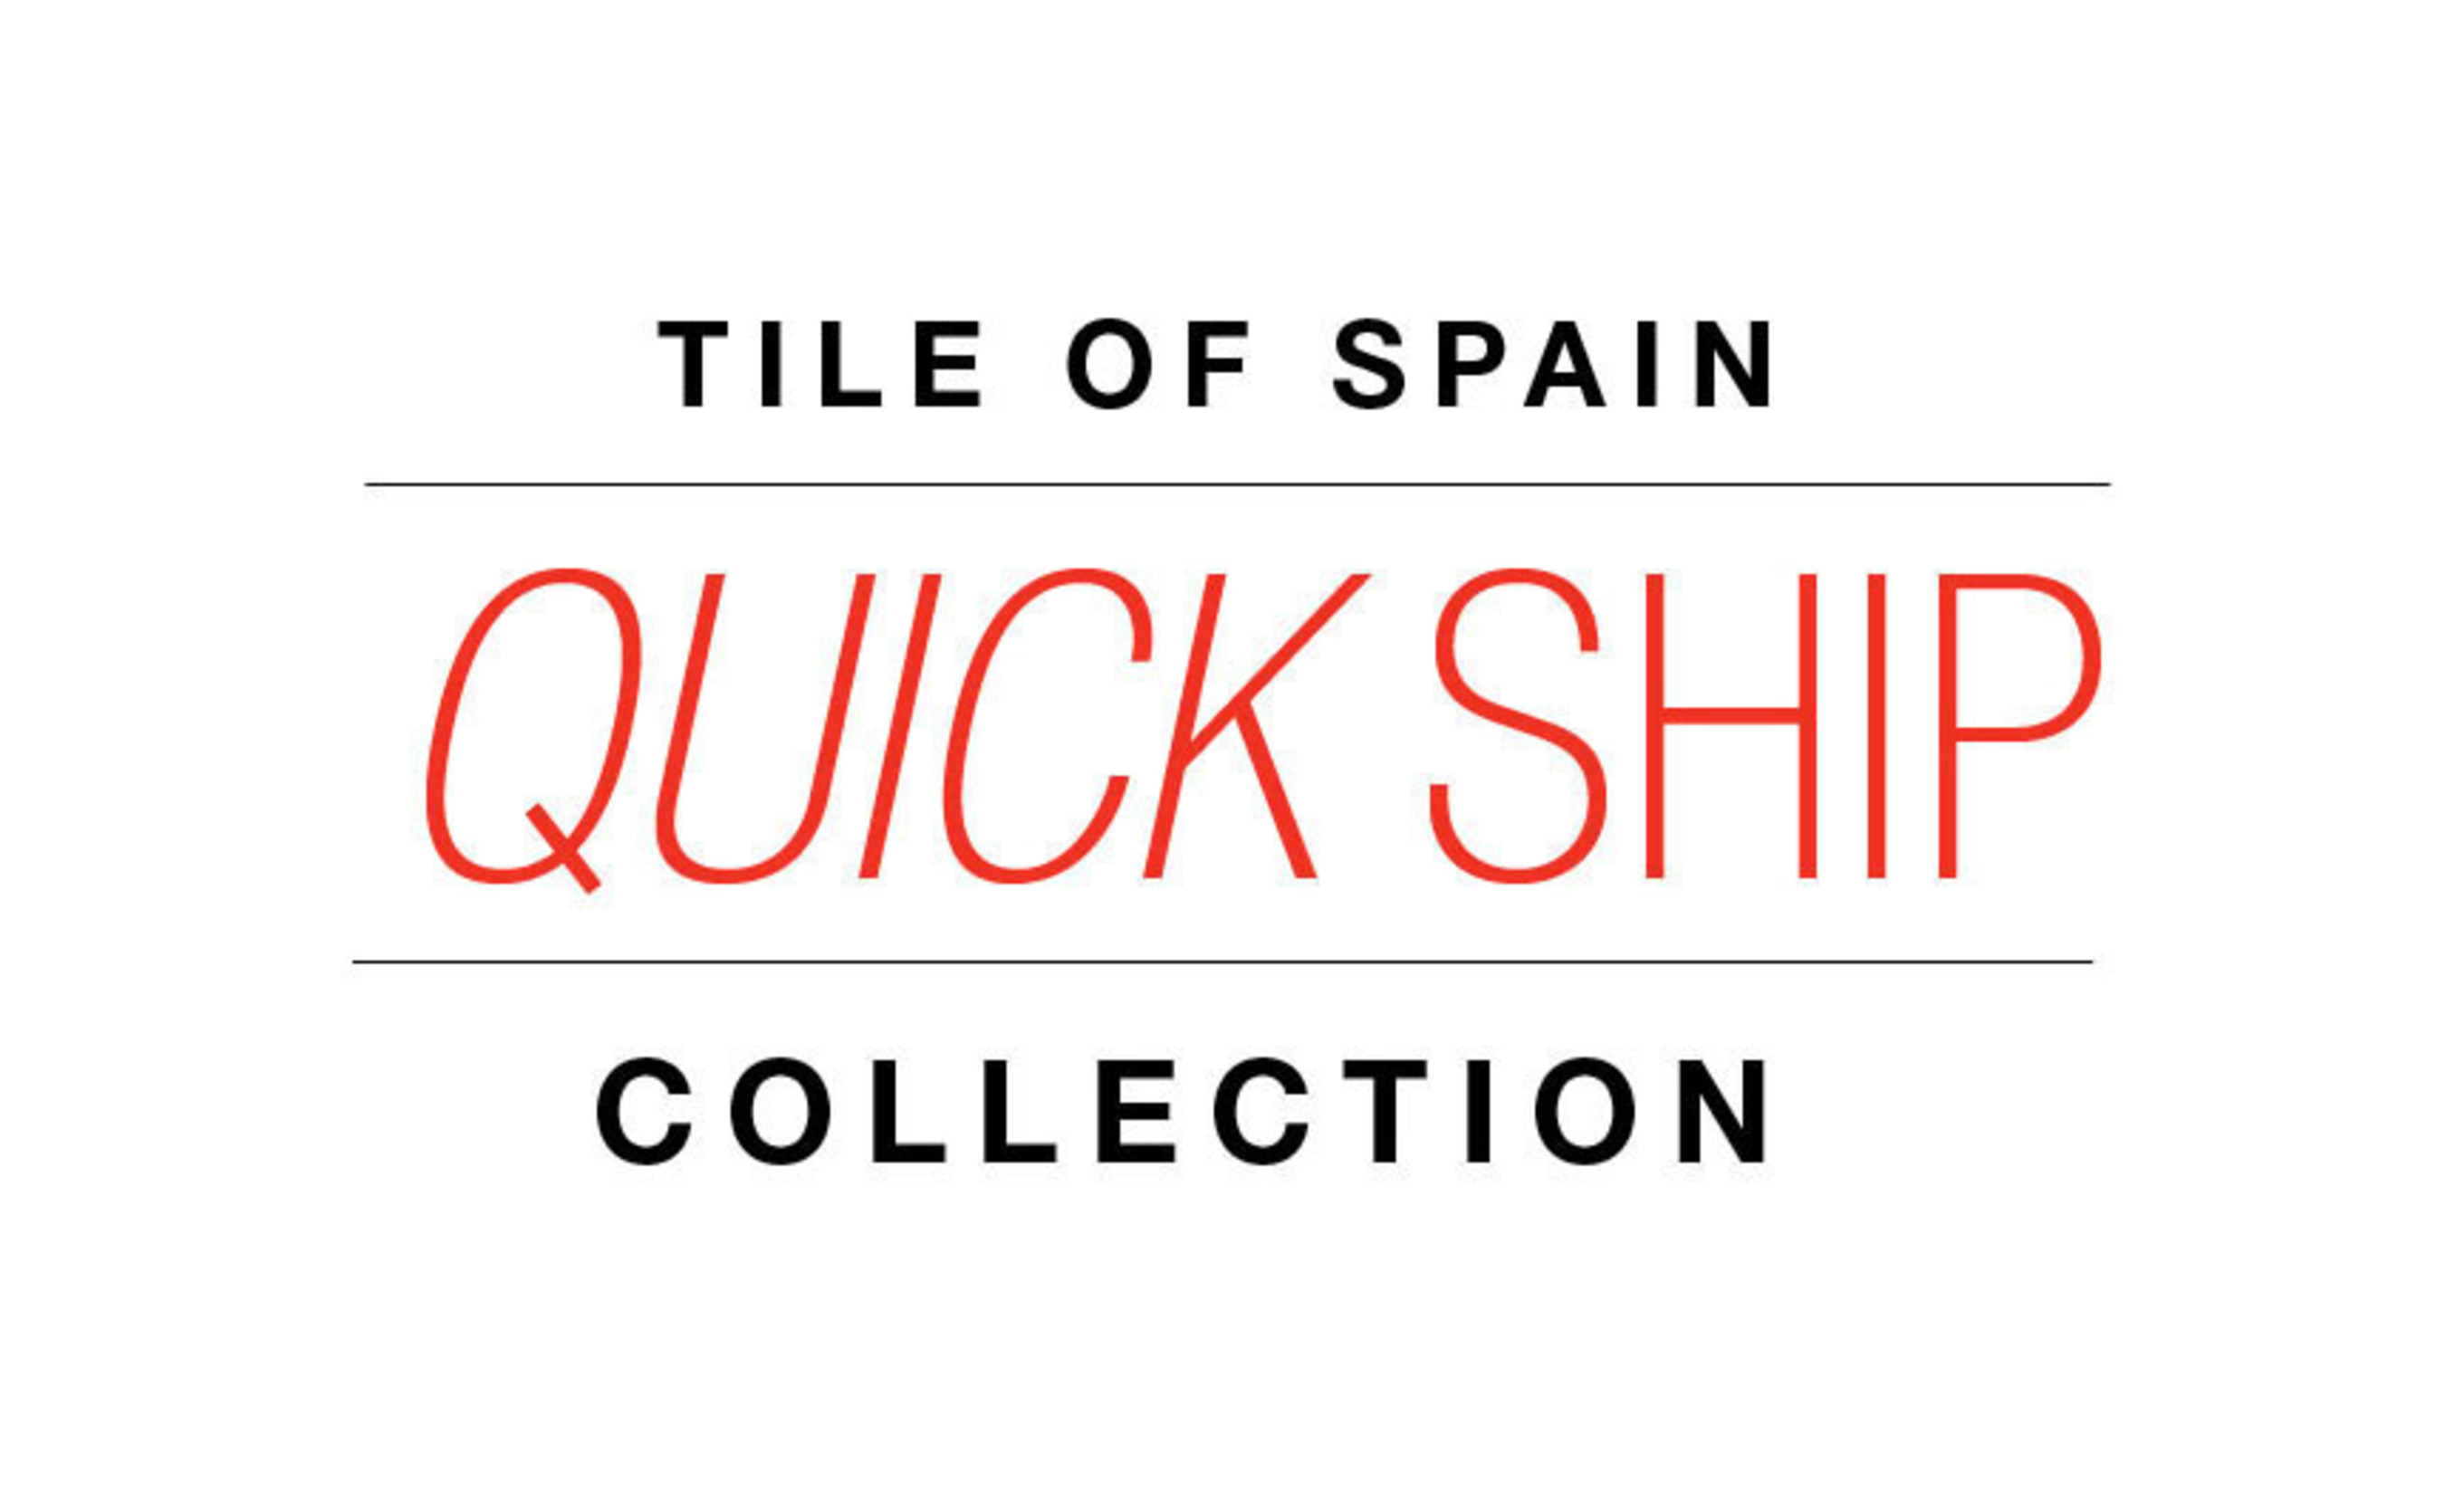 Nearly 200 Spanish tile series now available as part of the Tile of Spain Quick Ship Collection.